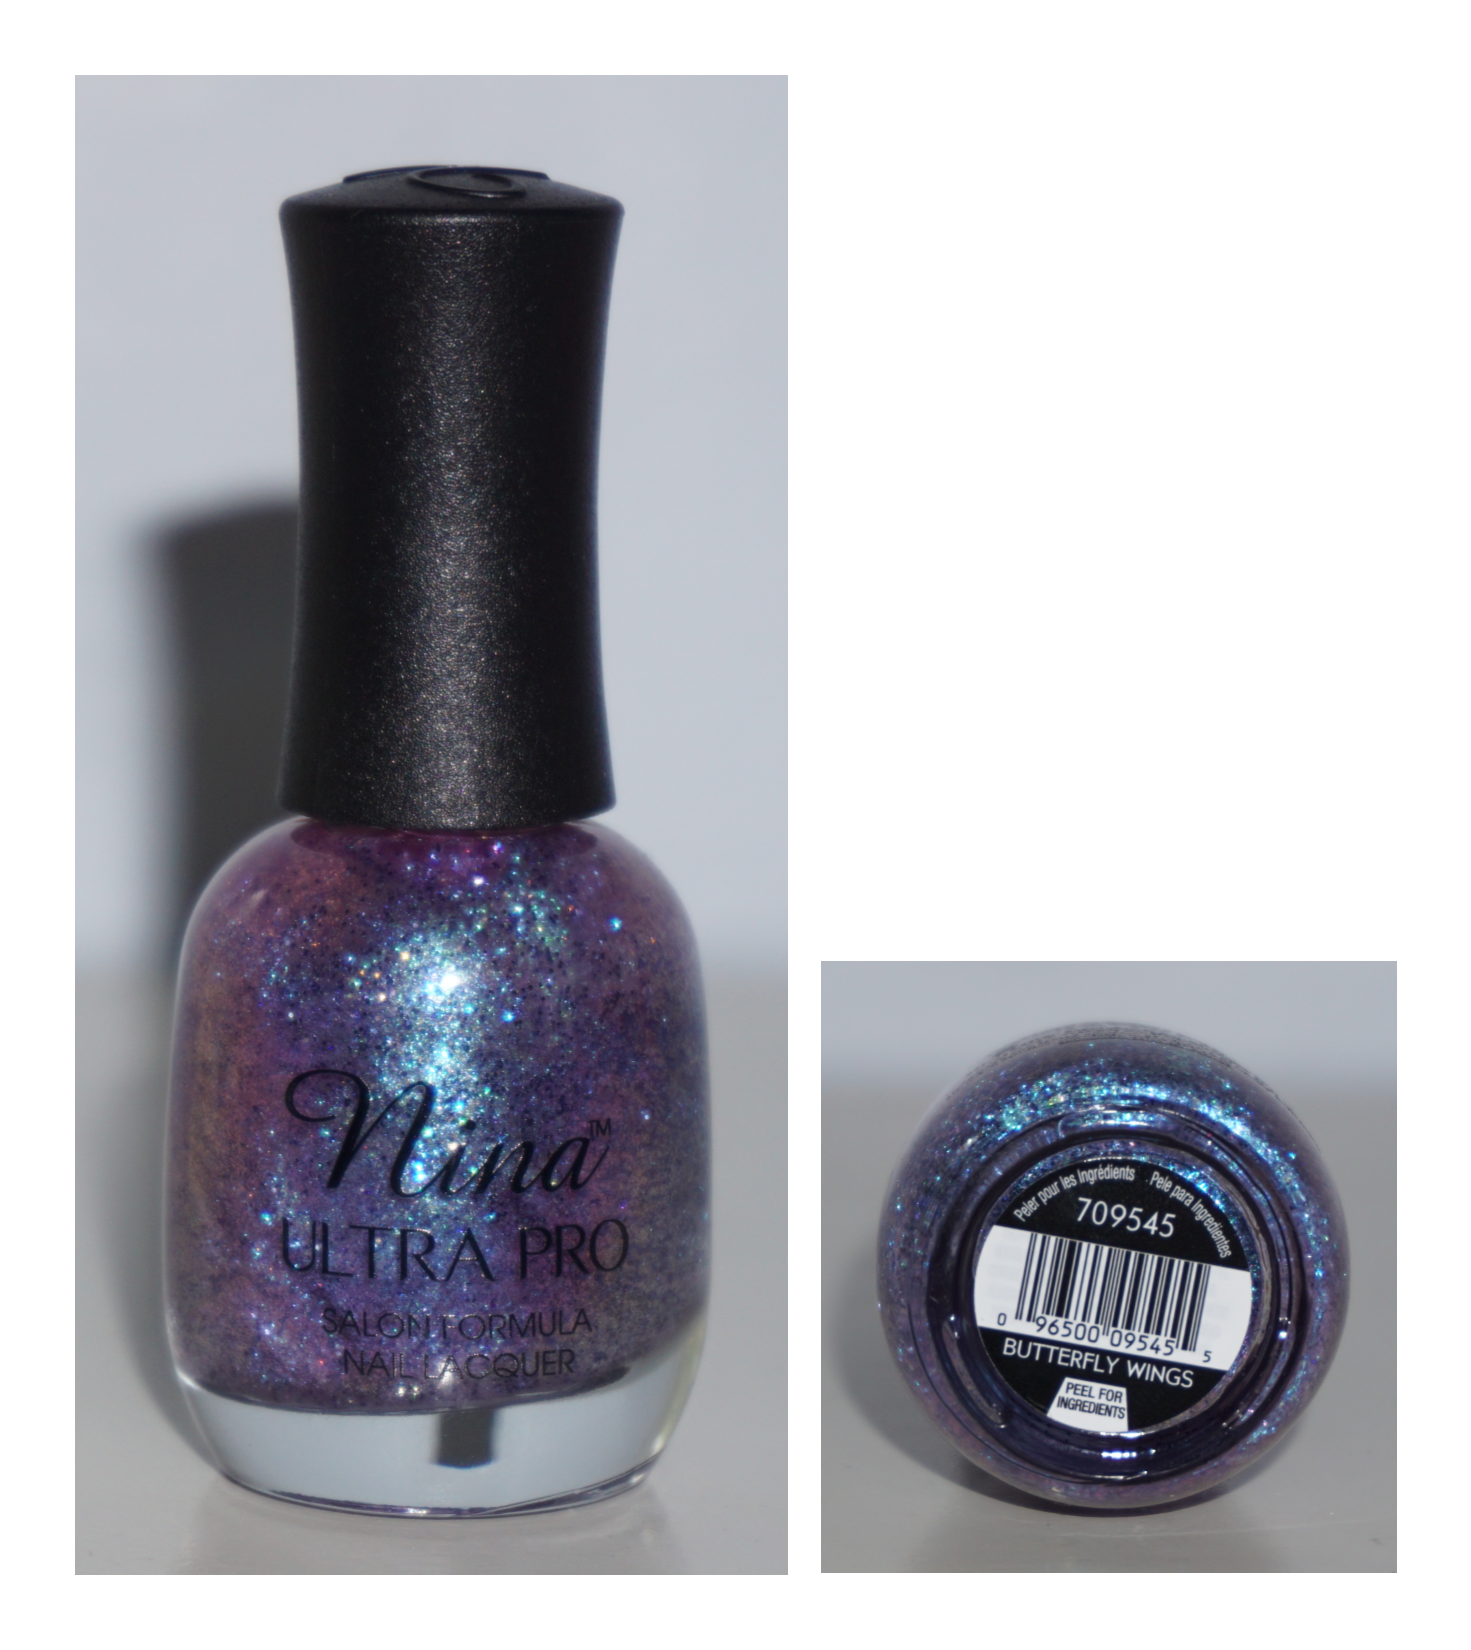 Nina Ultra Pro Butterfly Wings Iridescent Duochrome Purple Blue ...